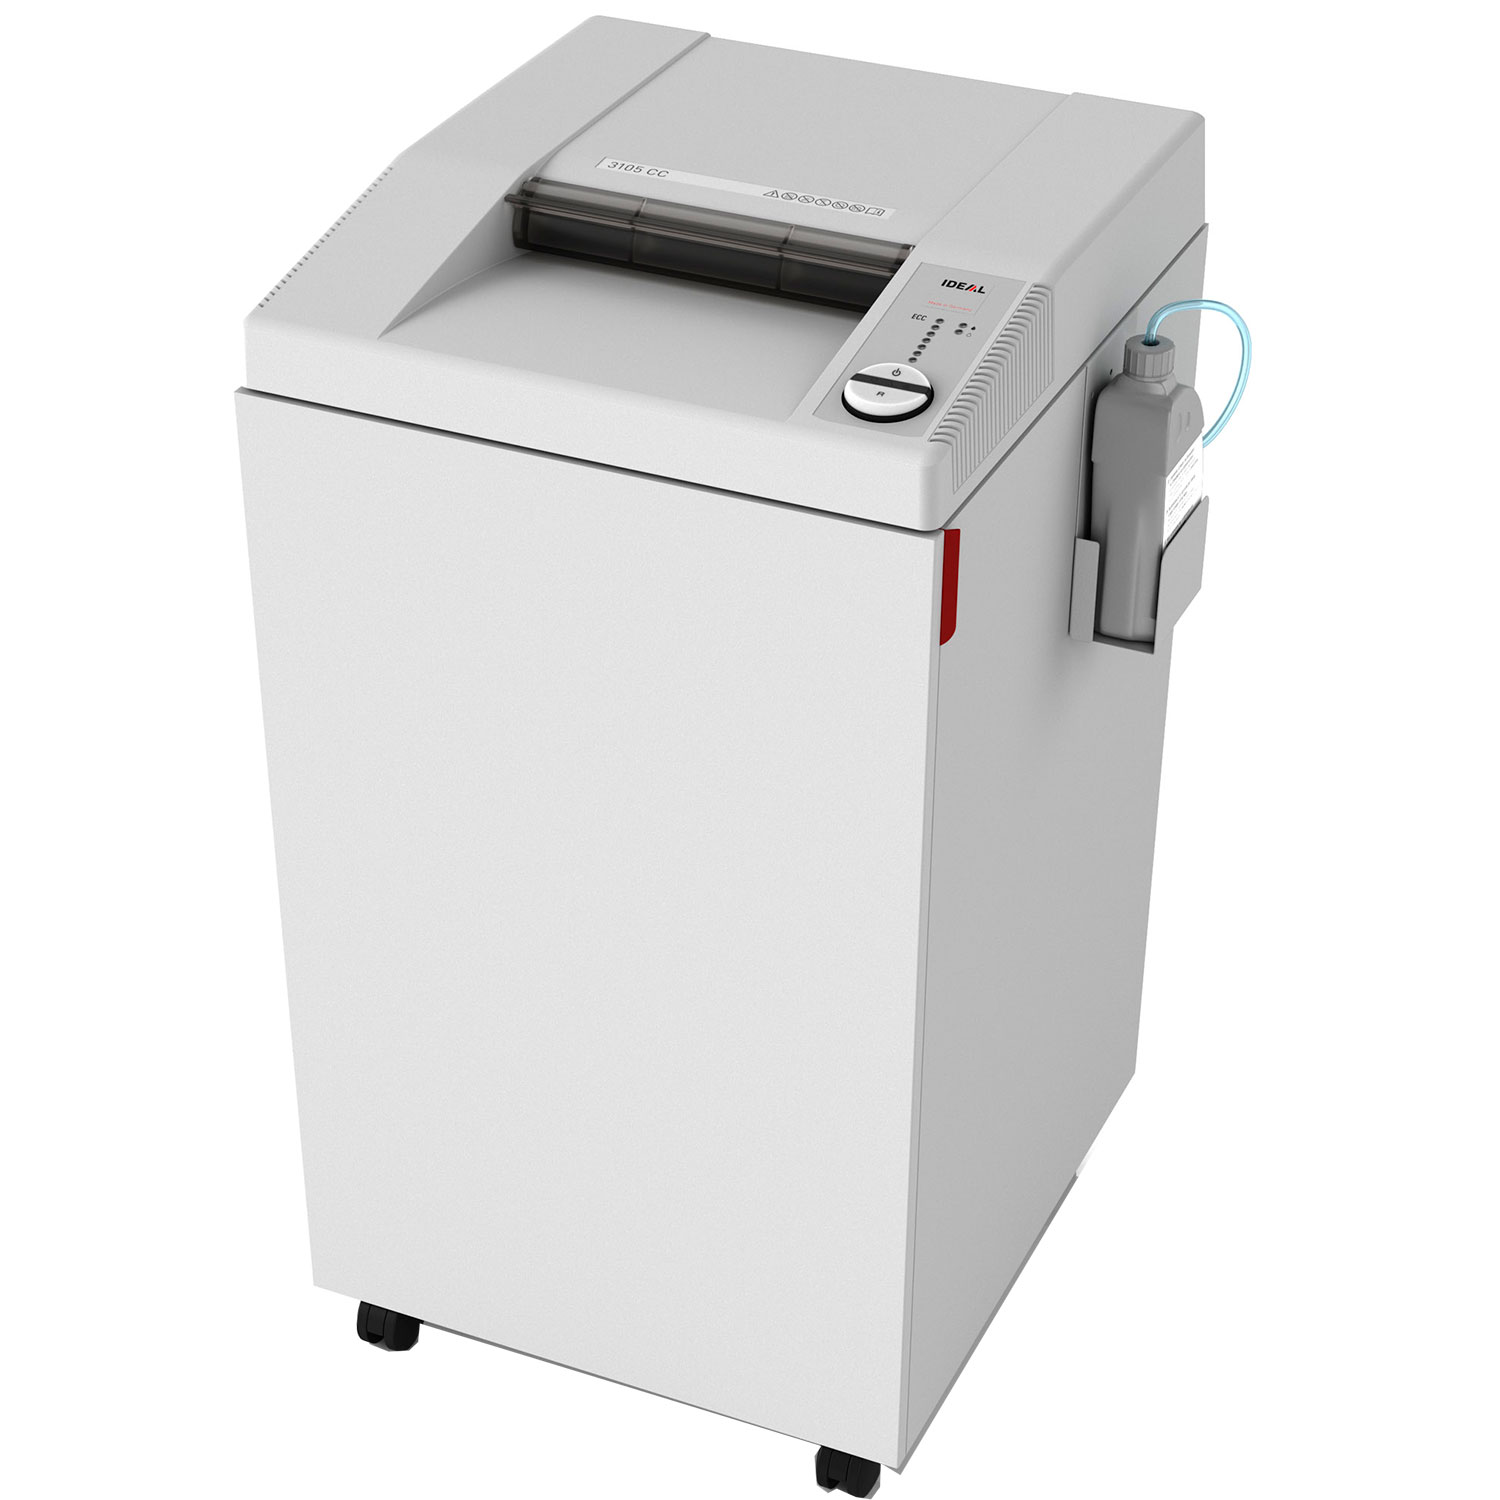 IDEAL 3105 Cross-Cut 2 x 15mm Paper Shredder